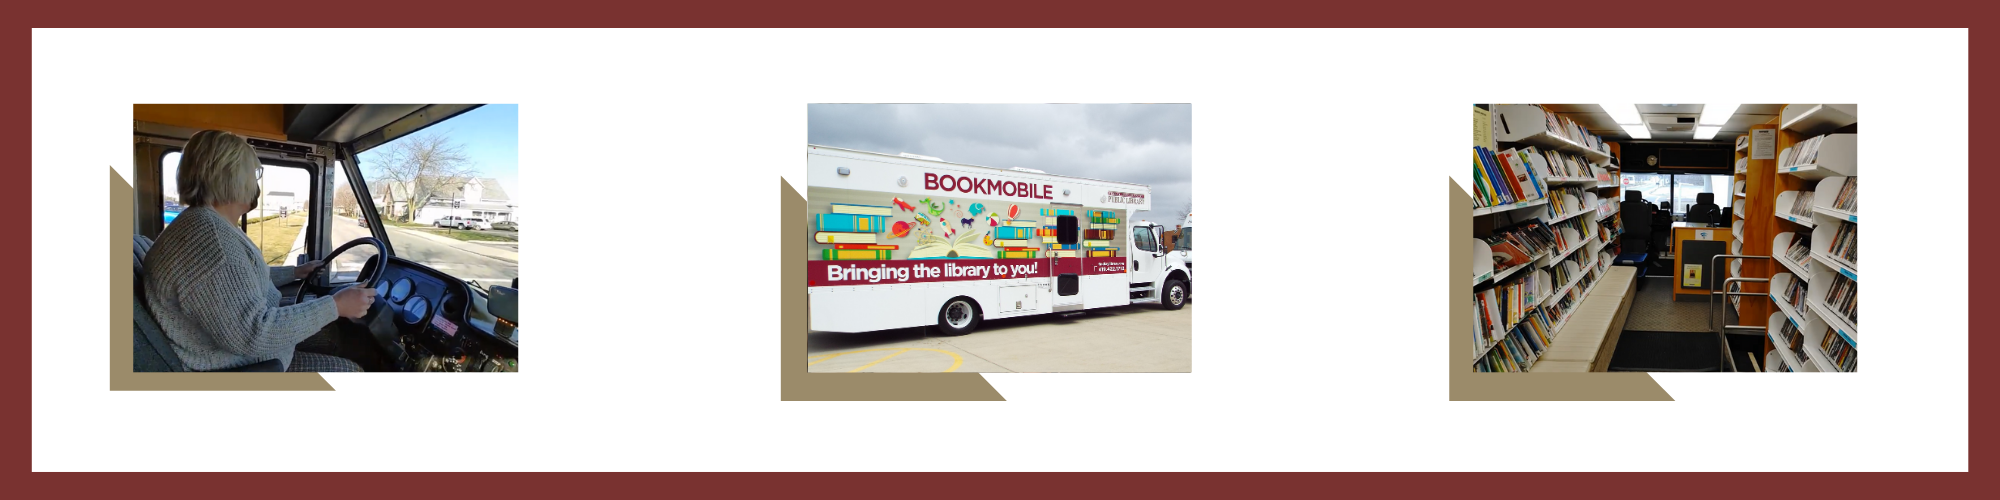 photos of bookmobile and inside of bookmobile with books and videos on shelves